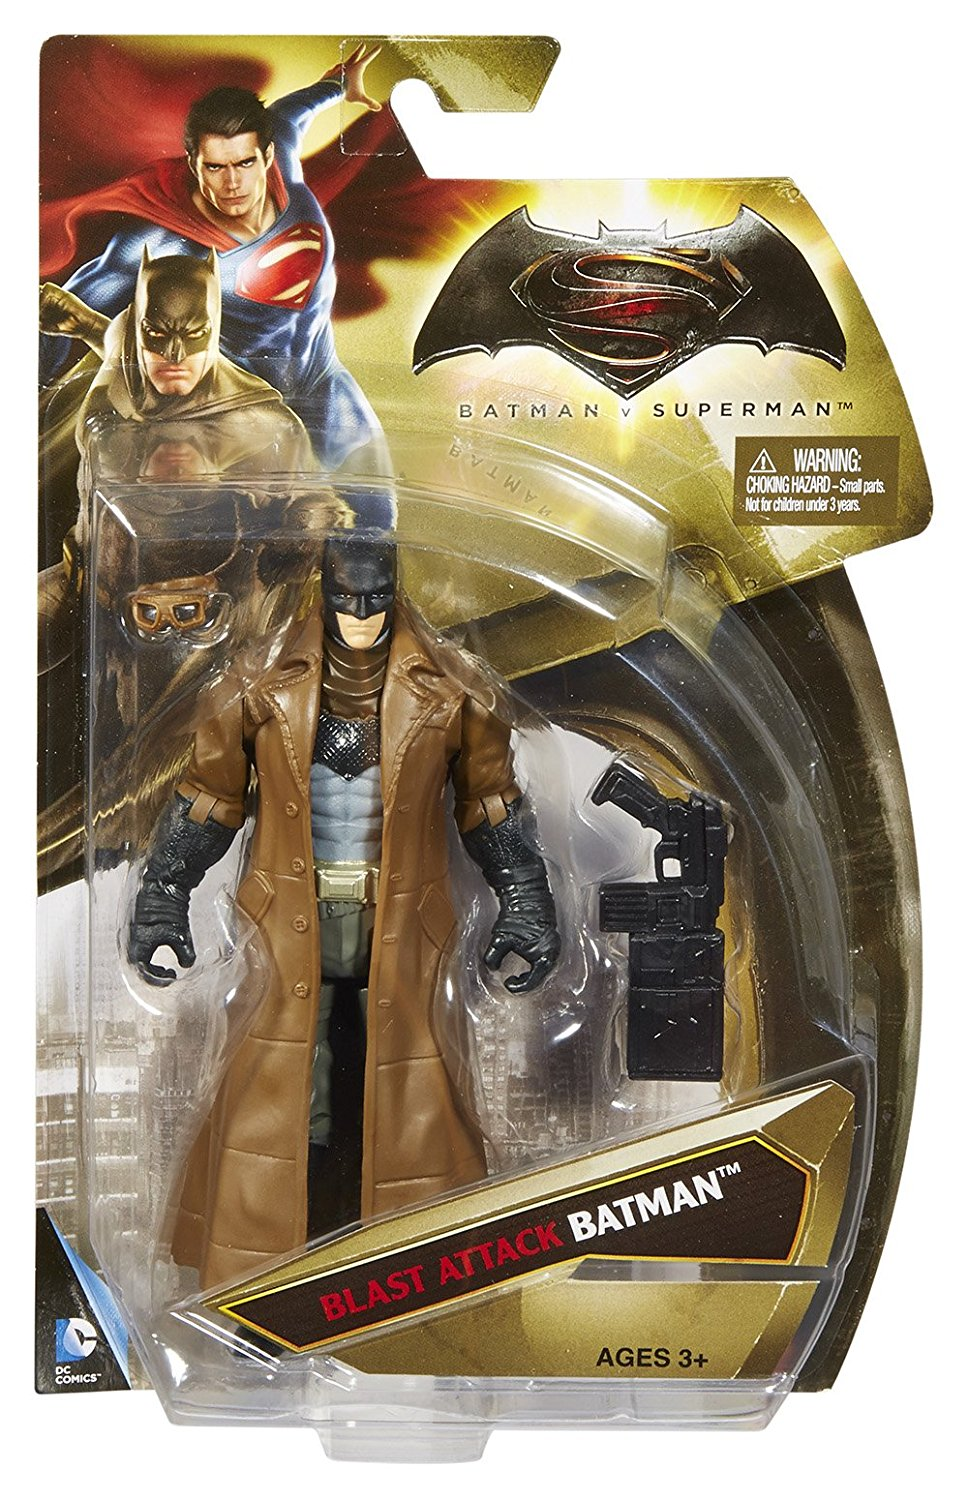 Batman v Superman: Dawn of Justice, Blast Attack Batman, 6 Inch Action Figure, Inspired by... by